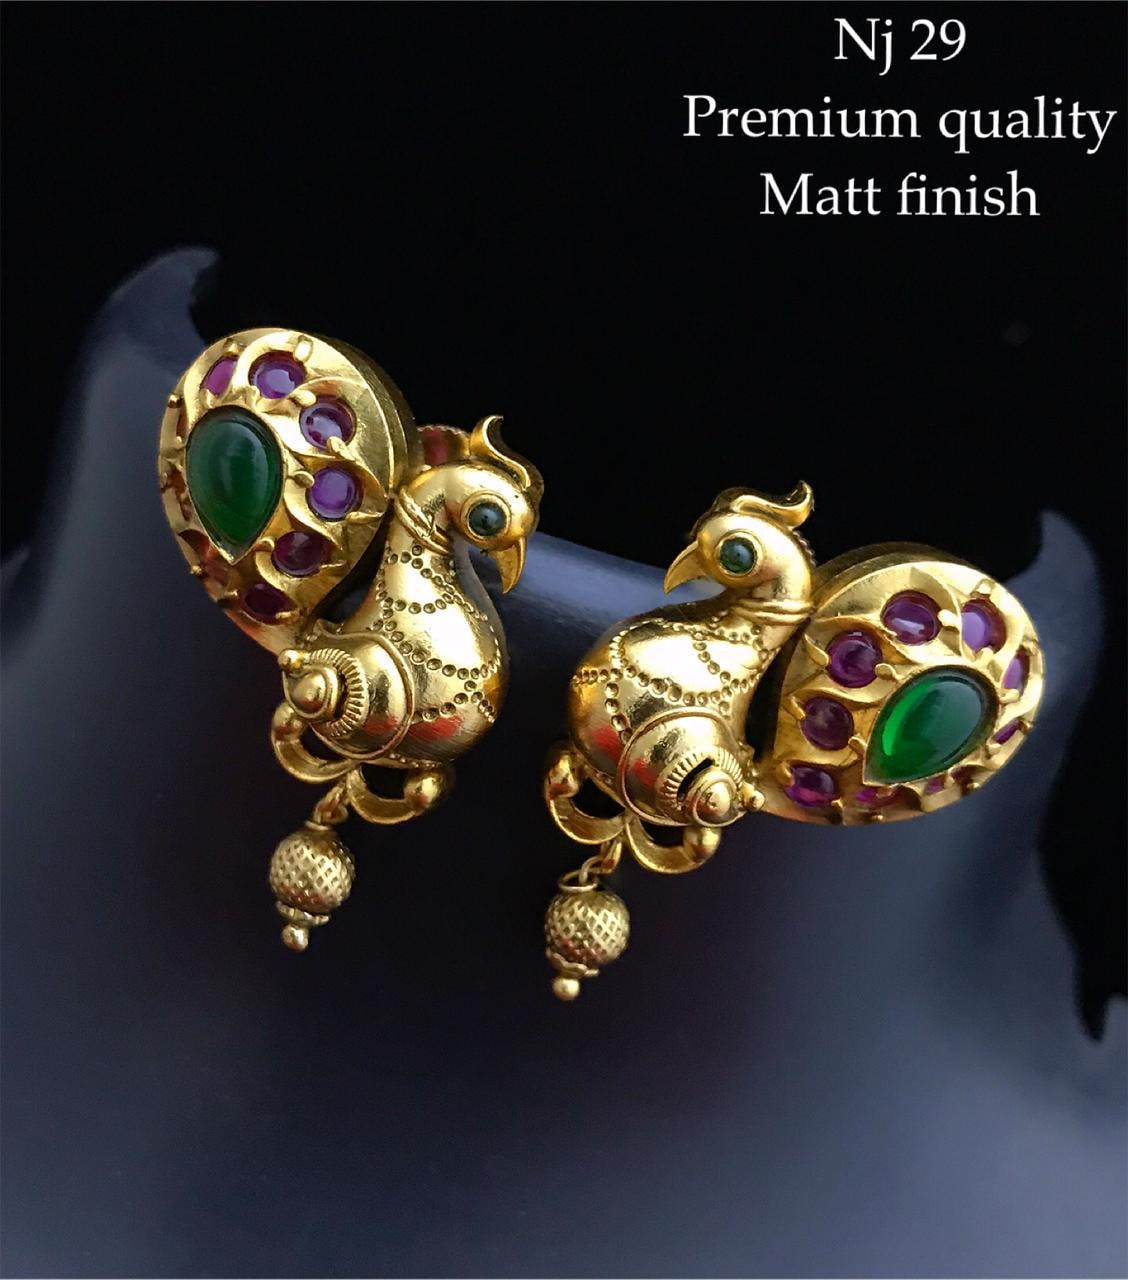 Beautiful matt finish peacock earrings studded with pink and green stones.   1 gram gold jewellery shops near me 1 gram gold chain for baby 1 gram gold sets online